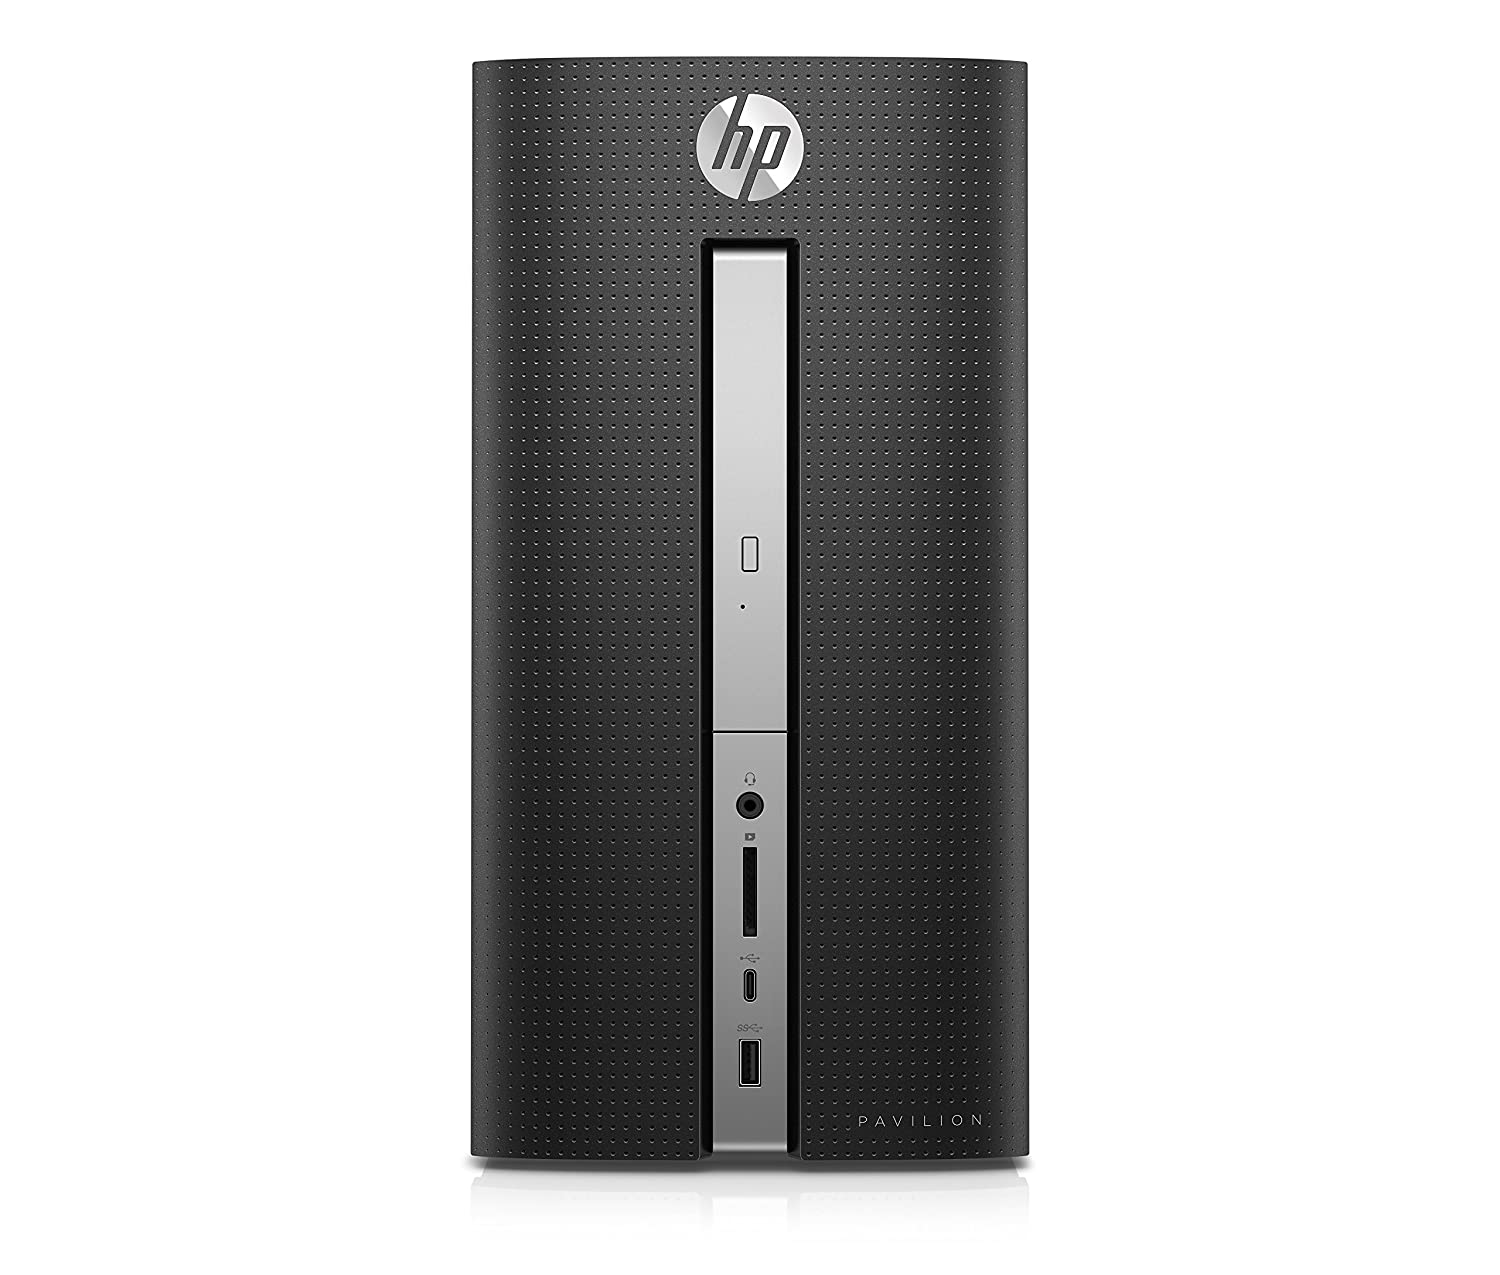 HP Pavilion 570-p010nl Desktop PC, 3 – 7100, 8 GB DDR4, SATA de 1 TB, AMD Radeon R5, Negro Brillante